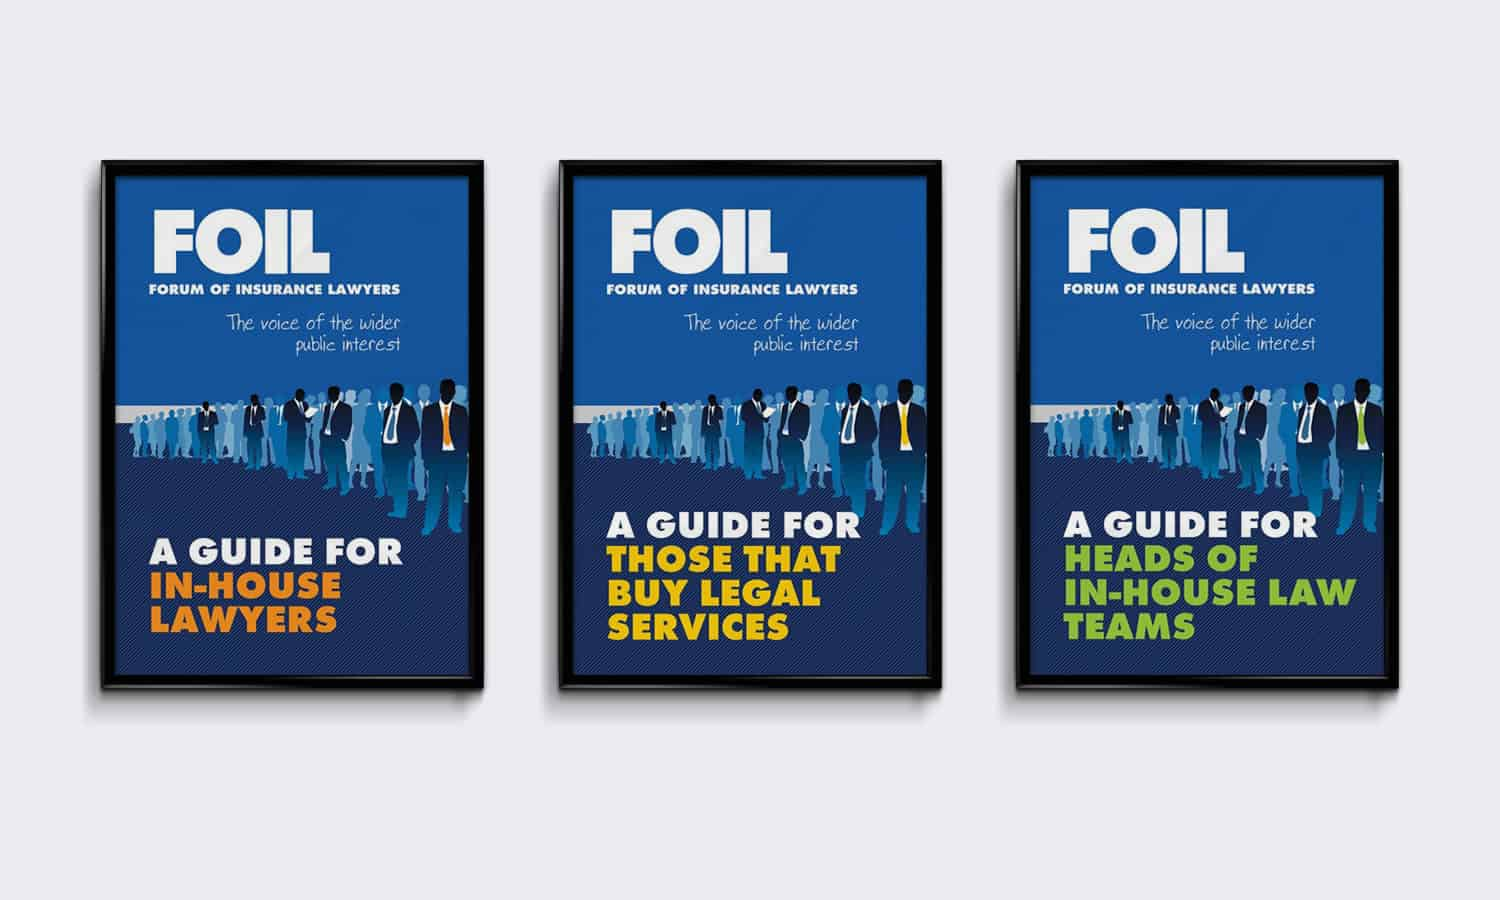 FOIL (Forum of Insurance Lawyers)